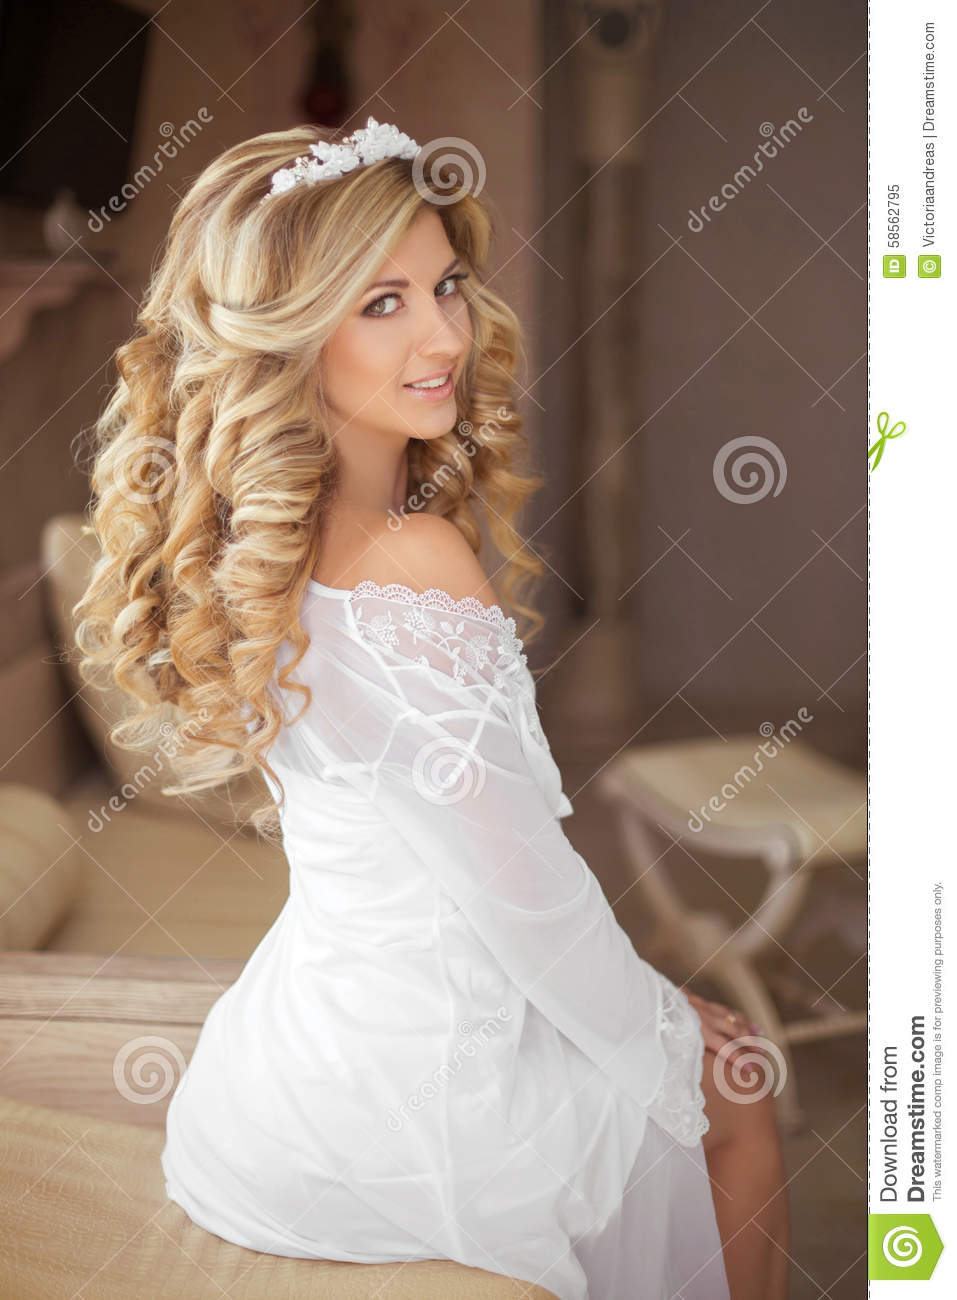 healthy hair. beautiful smiling girl bride with long blonde curl